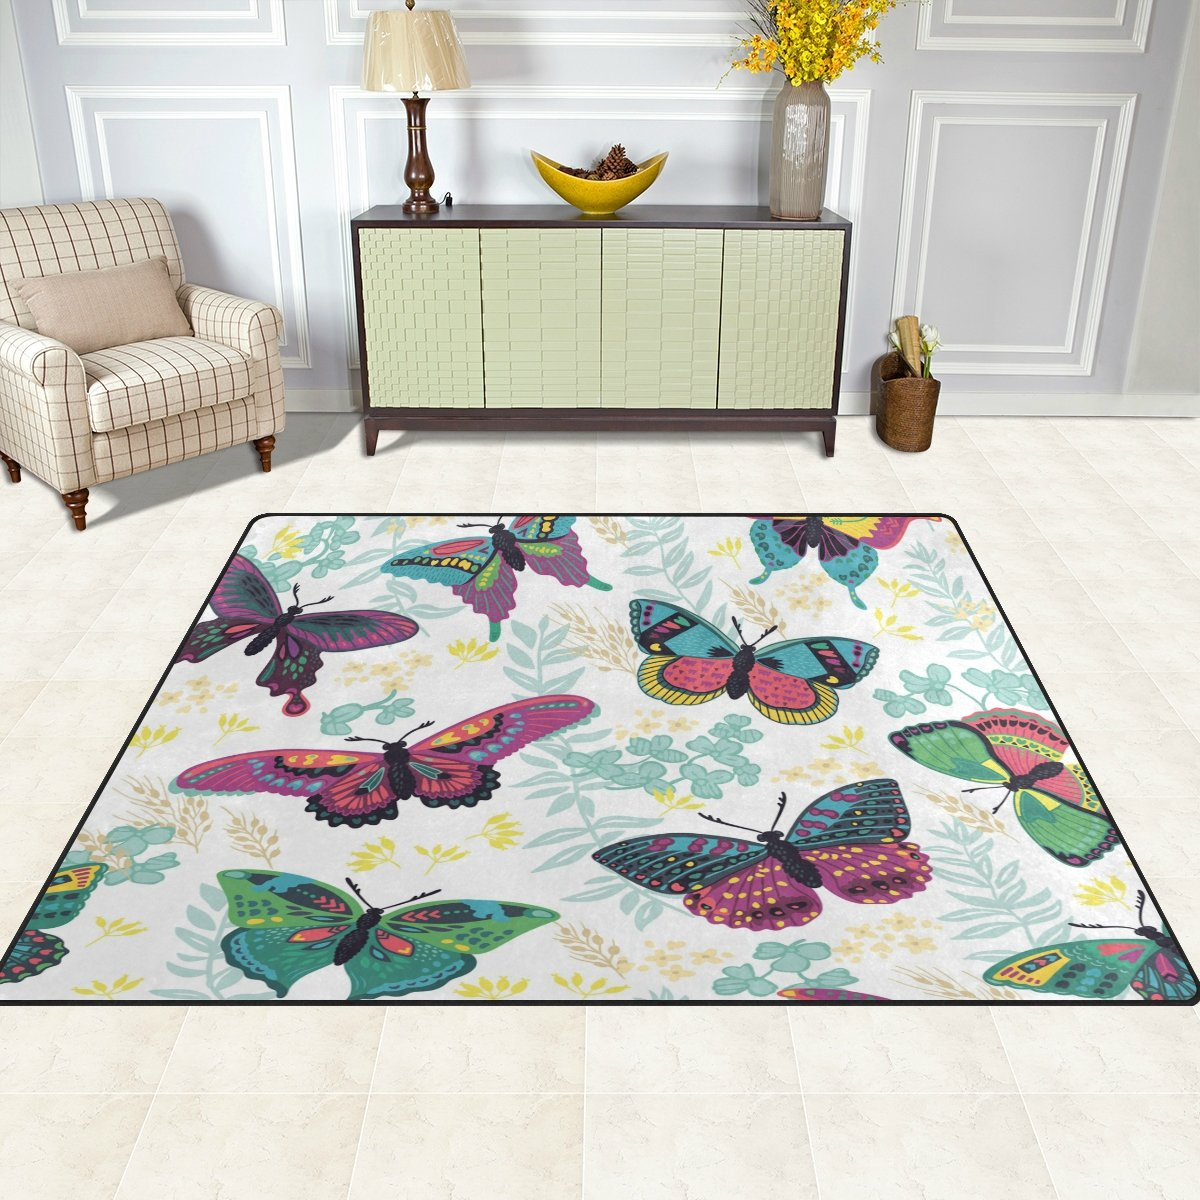 FFY GO Area Rug, Butterfly Print Carpet Super Soft Polyester Large Non-Slip Modern Bath Mats for Bedroom Living Room Hall Dinner Table Home Decor 48 x 63 inch